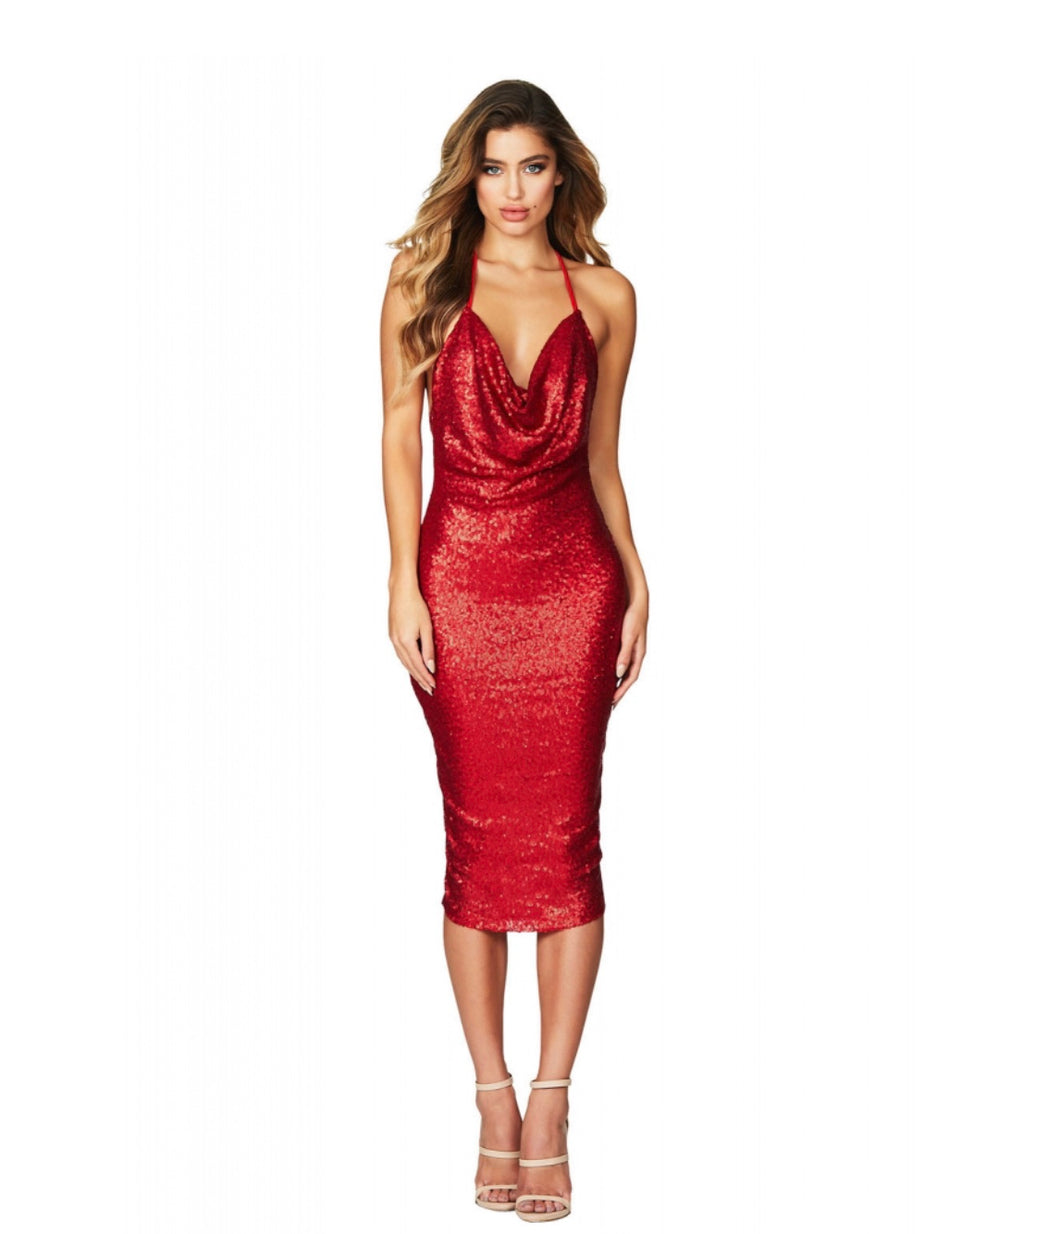 Red Seductive Sequin Midi Club Dress - MSCOOCO